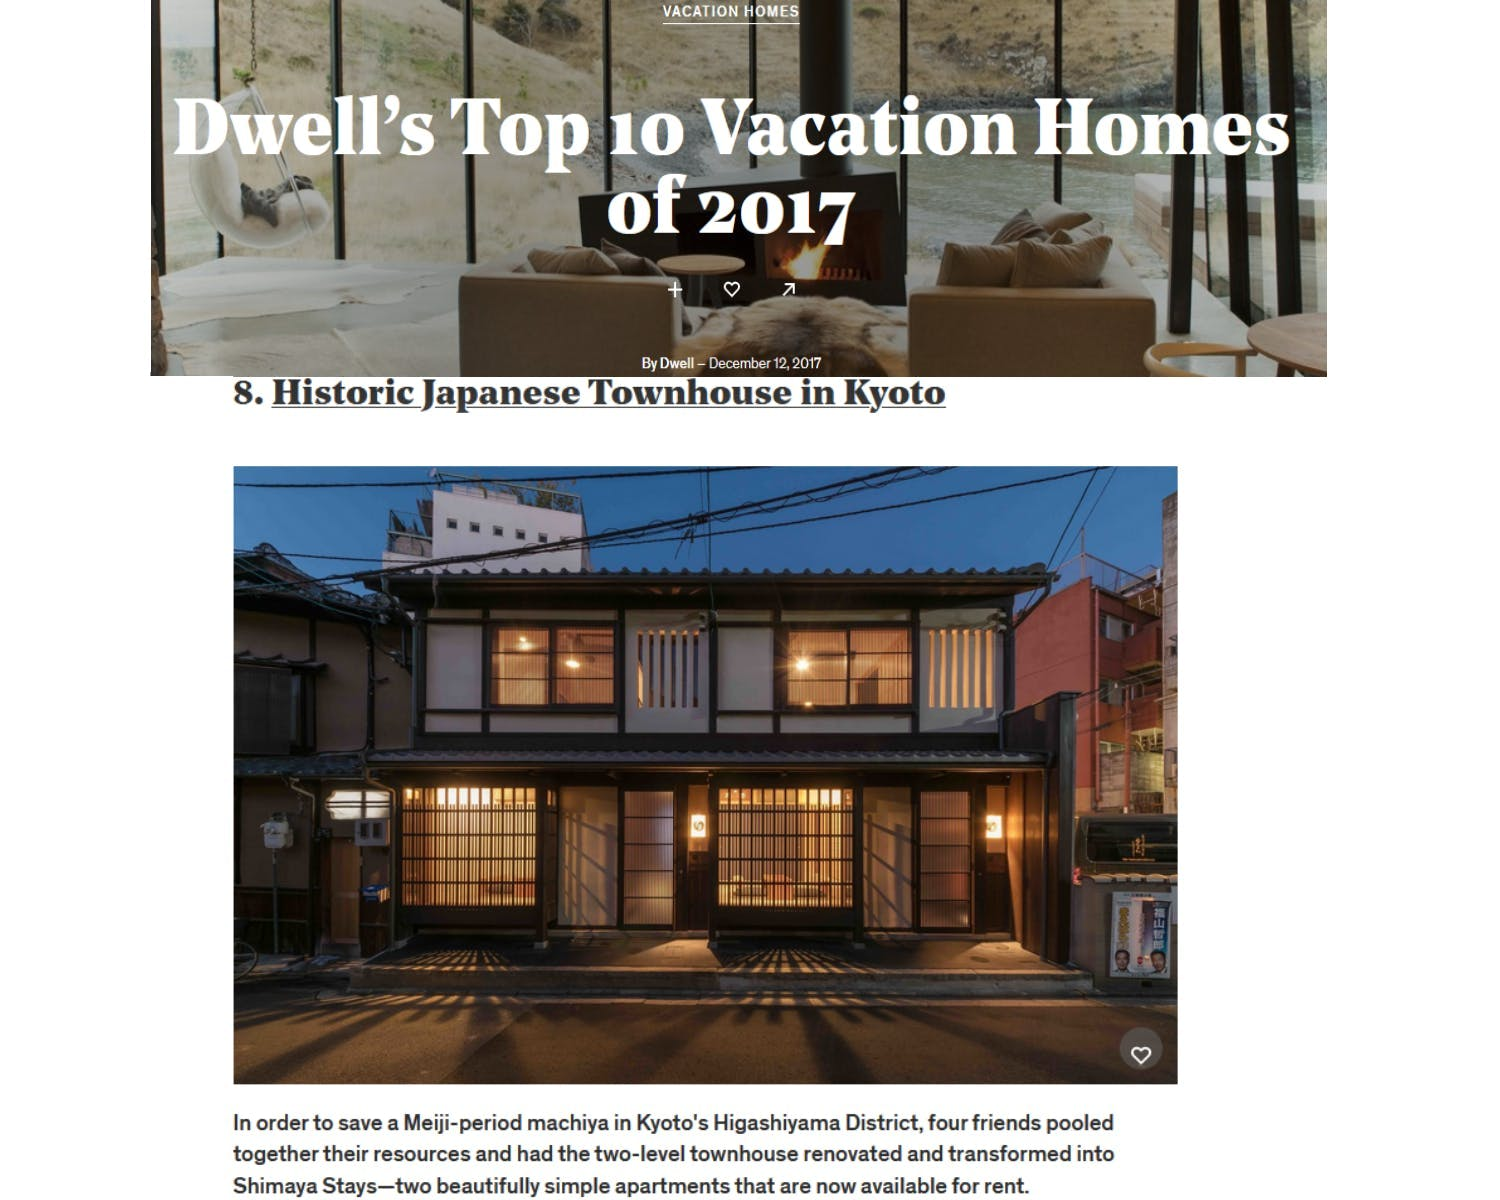 Shimaya Stays Media Mentions - Dwell Top 10 Vacation Homes